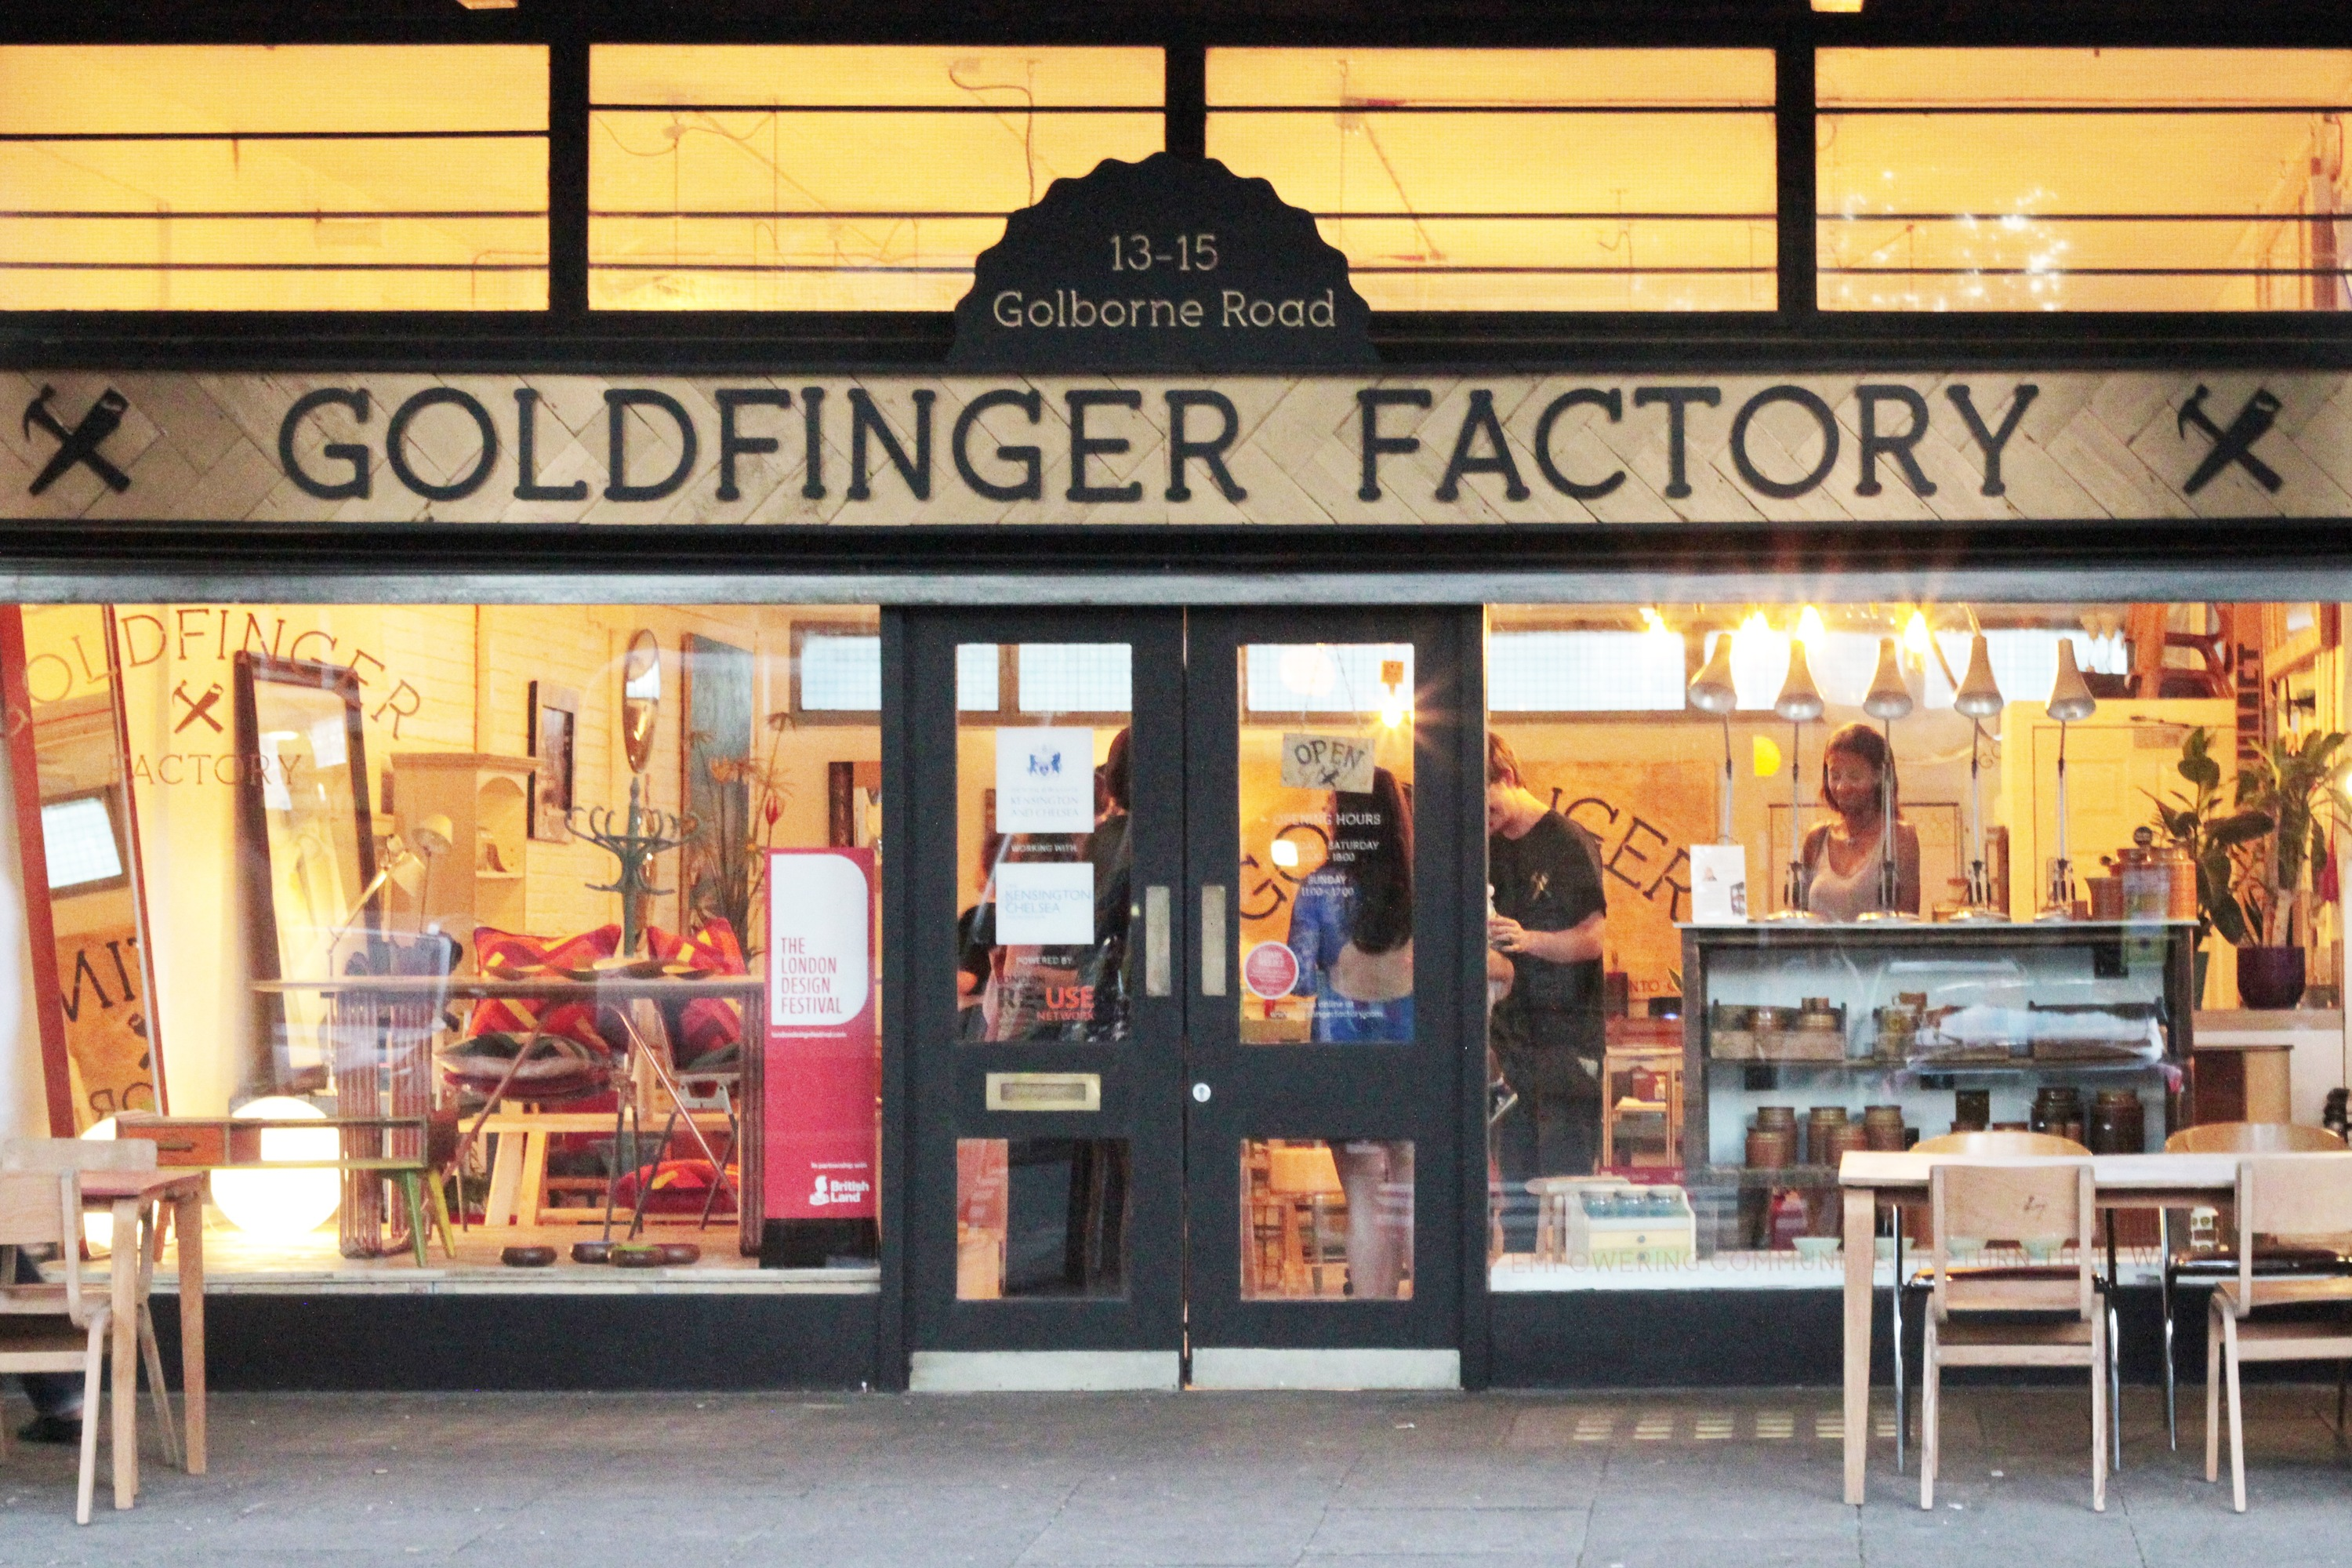 Goldfinger Factory